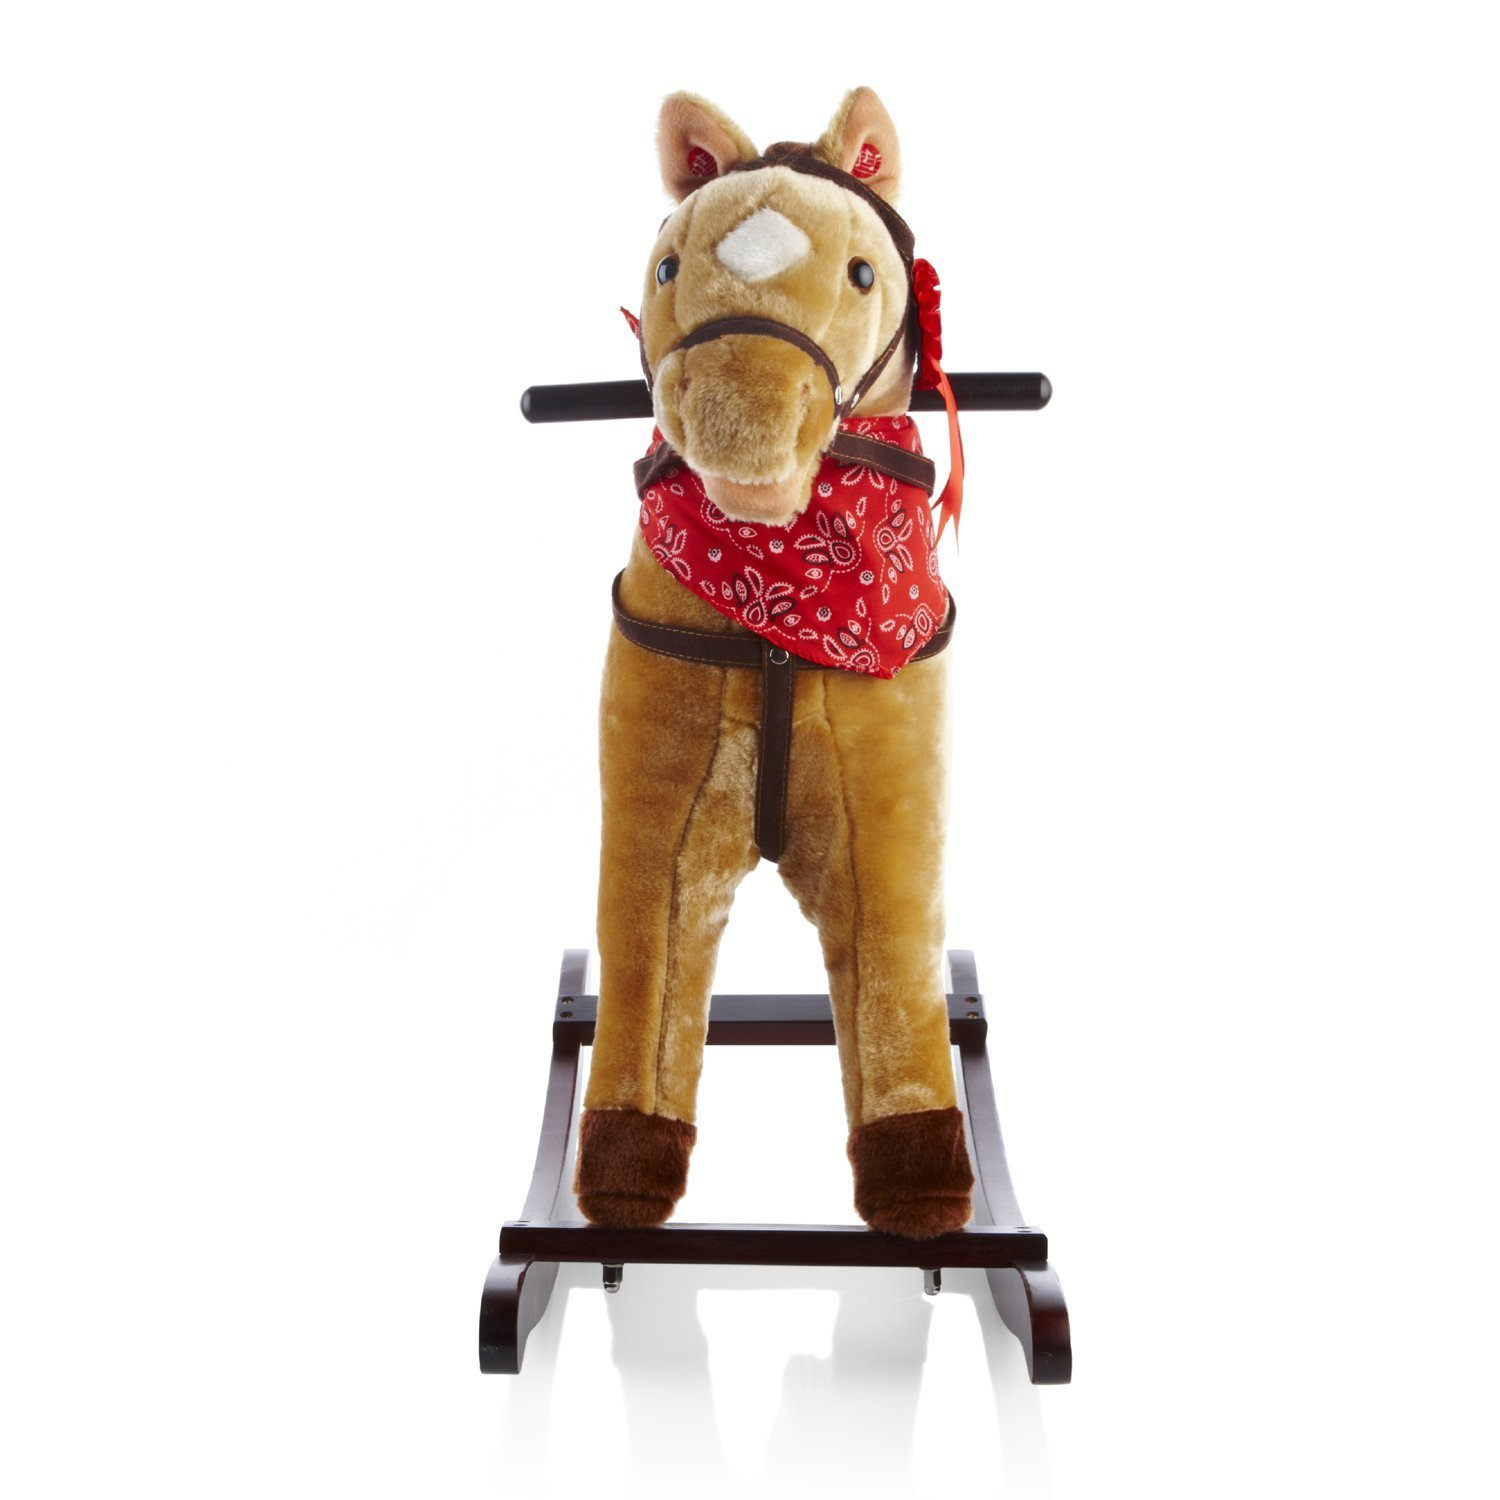 Deluxe Rocking Horse - With Sounds image